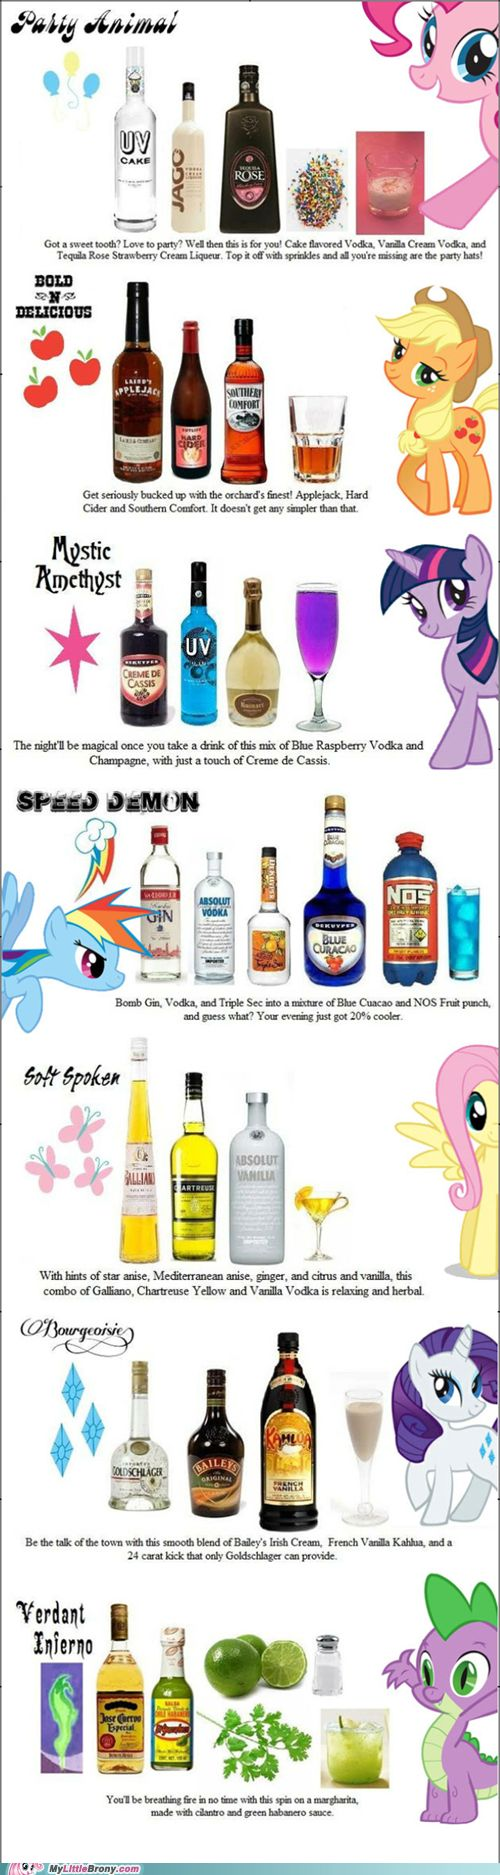 I love the Pinkie Pie one, I even have cake vodka in my freezer right now. :P I also think I'd like the Twilight Sparkle and Rarity ones, too. Hmm....